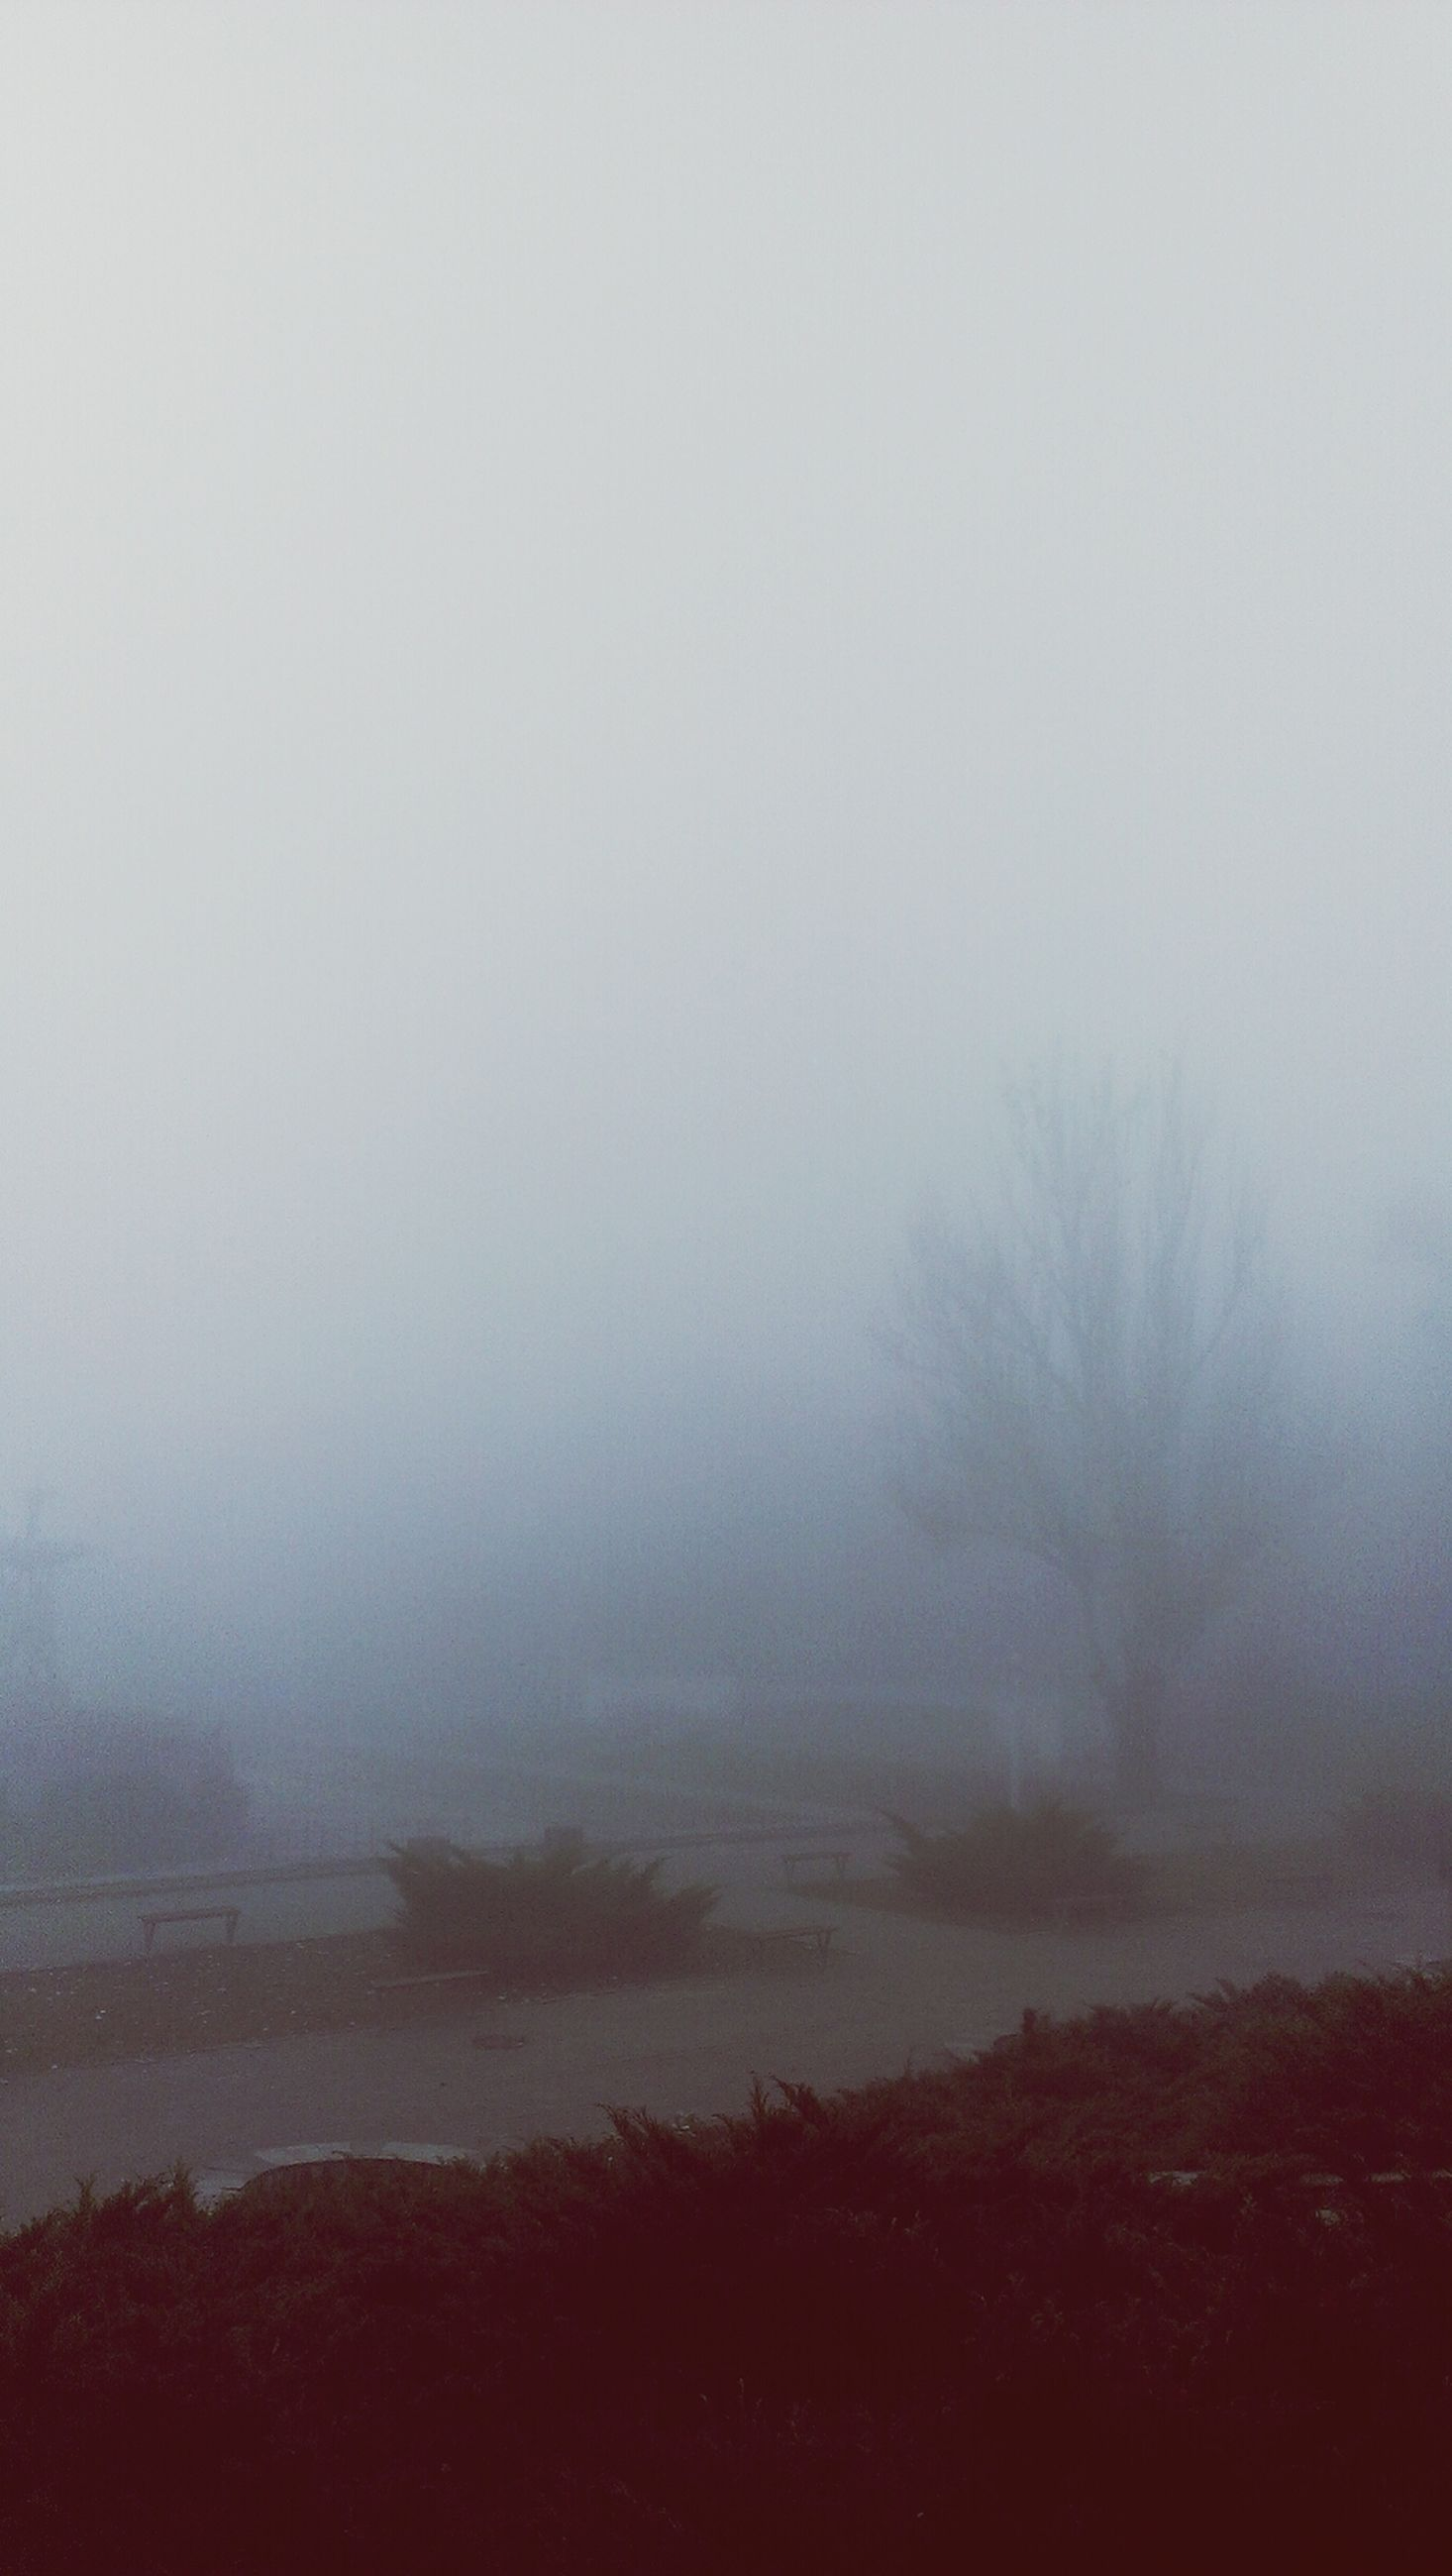 fog, foggy, tranquil scene, tranquility, weather, scenics, beauty in nature, water, tree, nature, copy space, mist, landscape, non-urban scene, idyllic, lake, sky, remote, outdoors